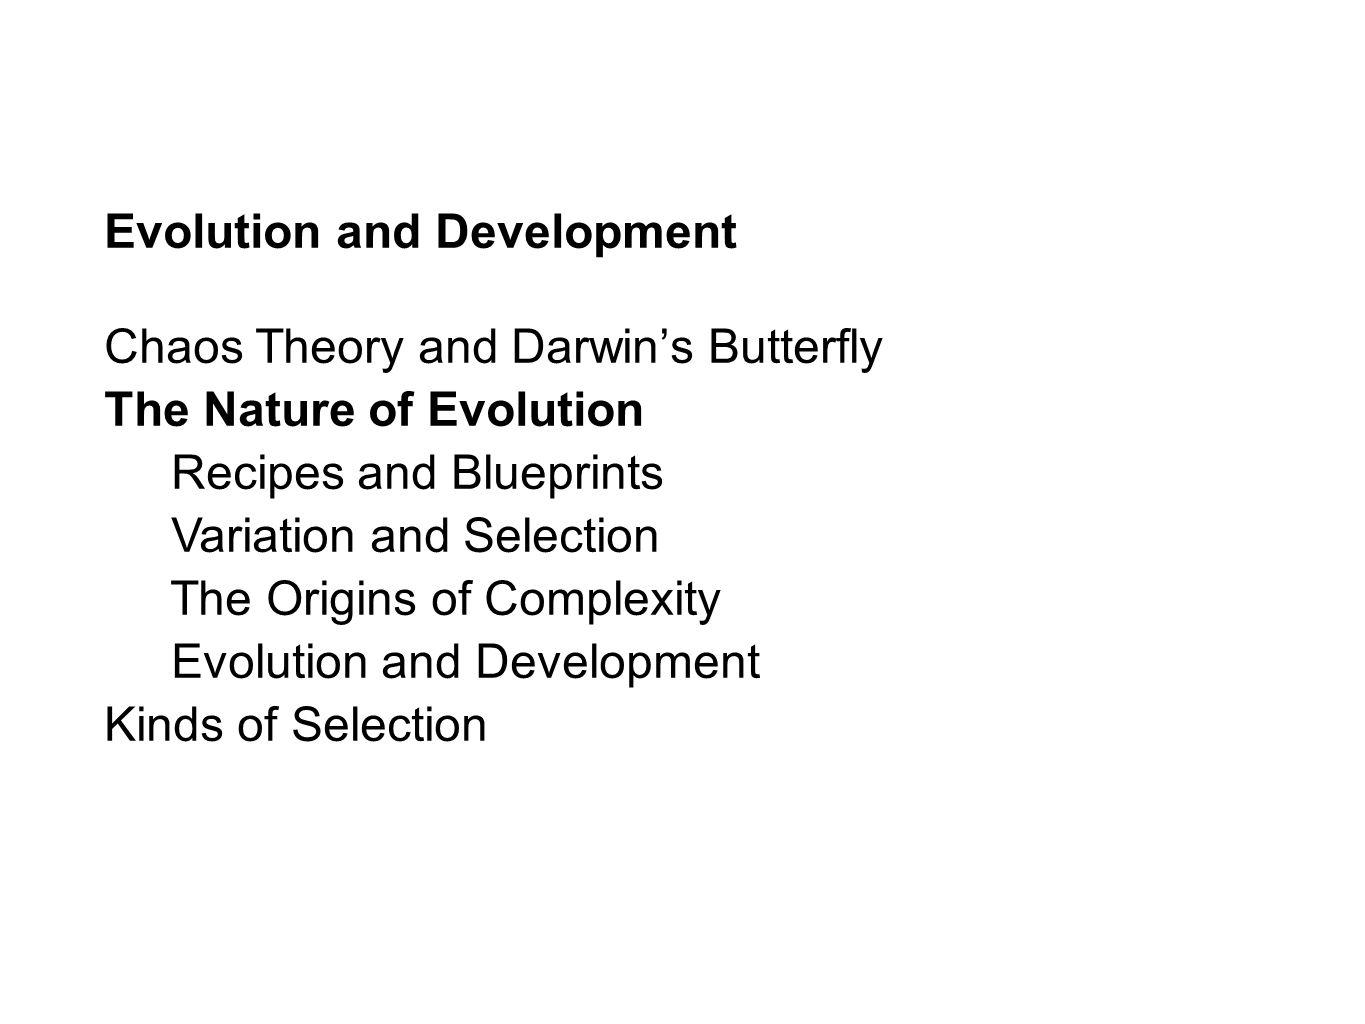 Evolution and Development Chaos Theory and Darwins Butterfly The Nature of Evolution Recipes and Blueprints Variation and Selection The Origins of Complexity Evolution and Development Kinds of Selection